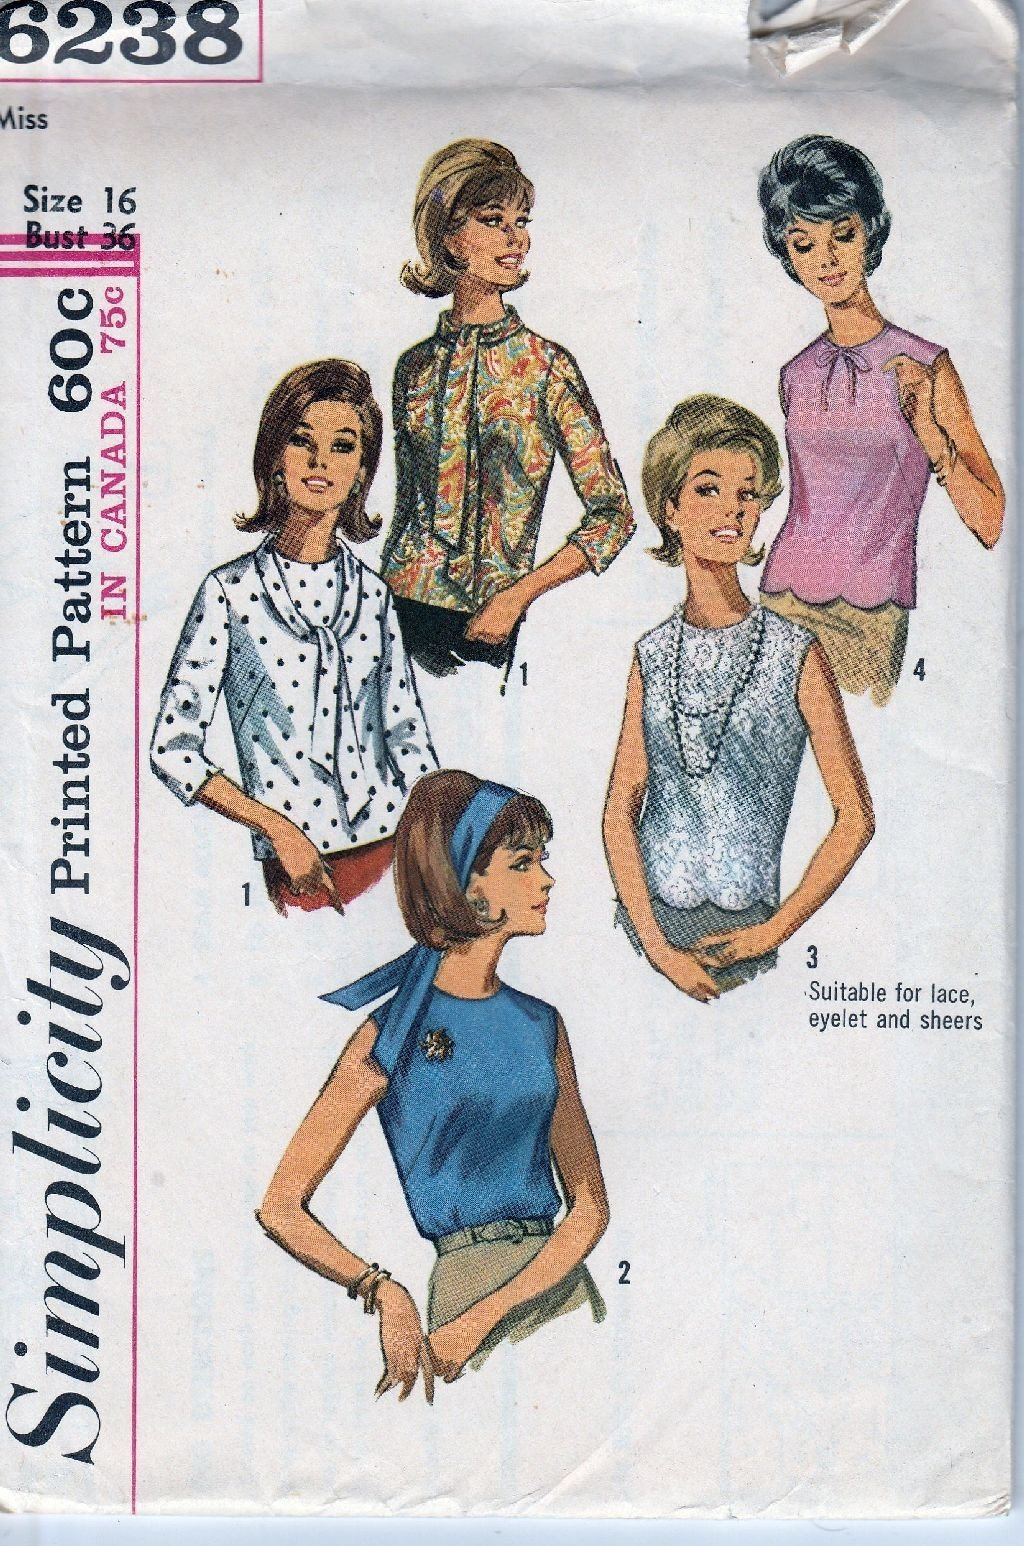 Simplicity 6238 Vintage Sewing Pattern 1960's Ladies Blouse Collarless Back Opening - VintageStitching - Vintage Sewing Patterns